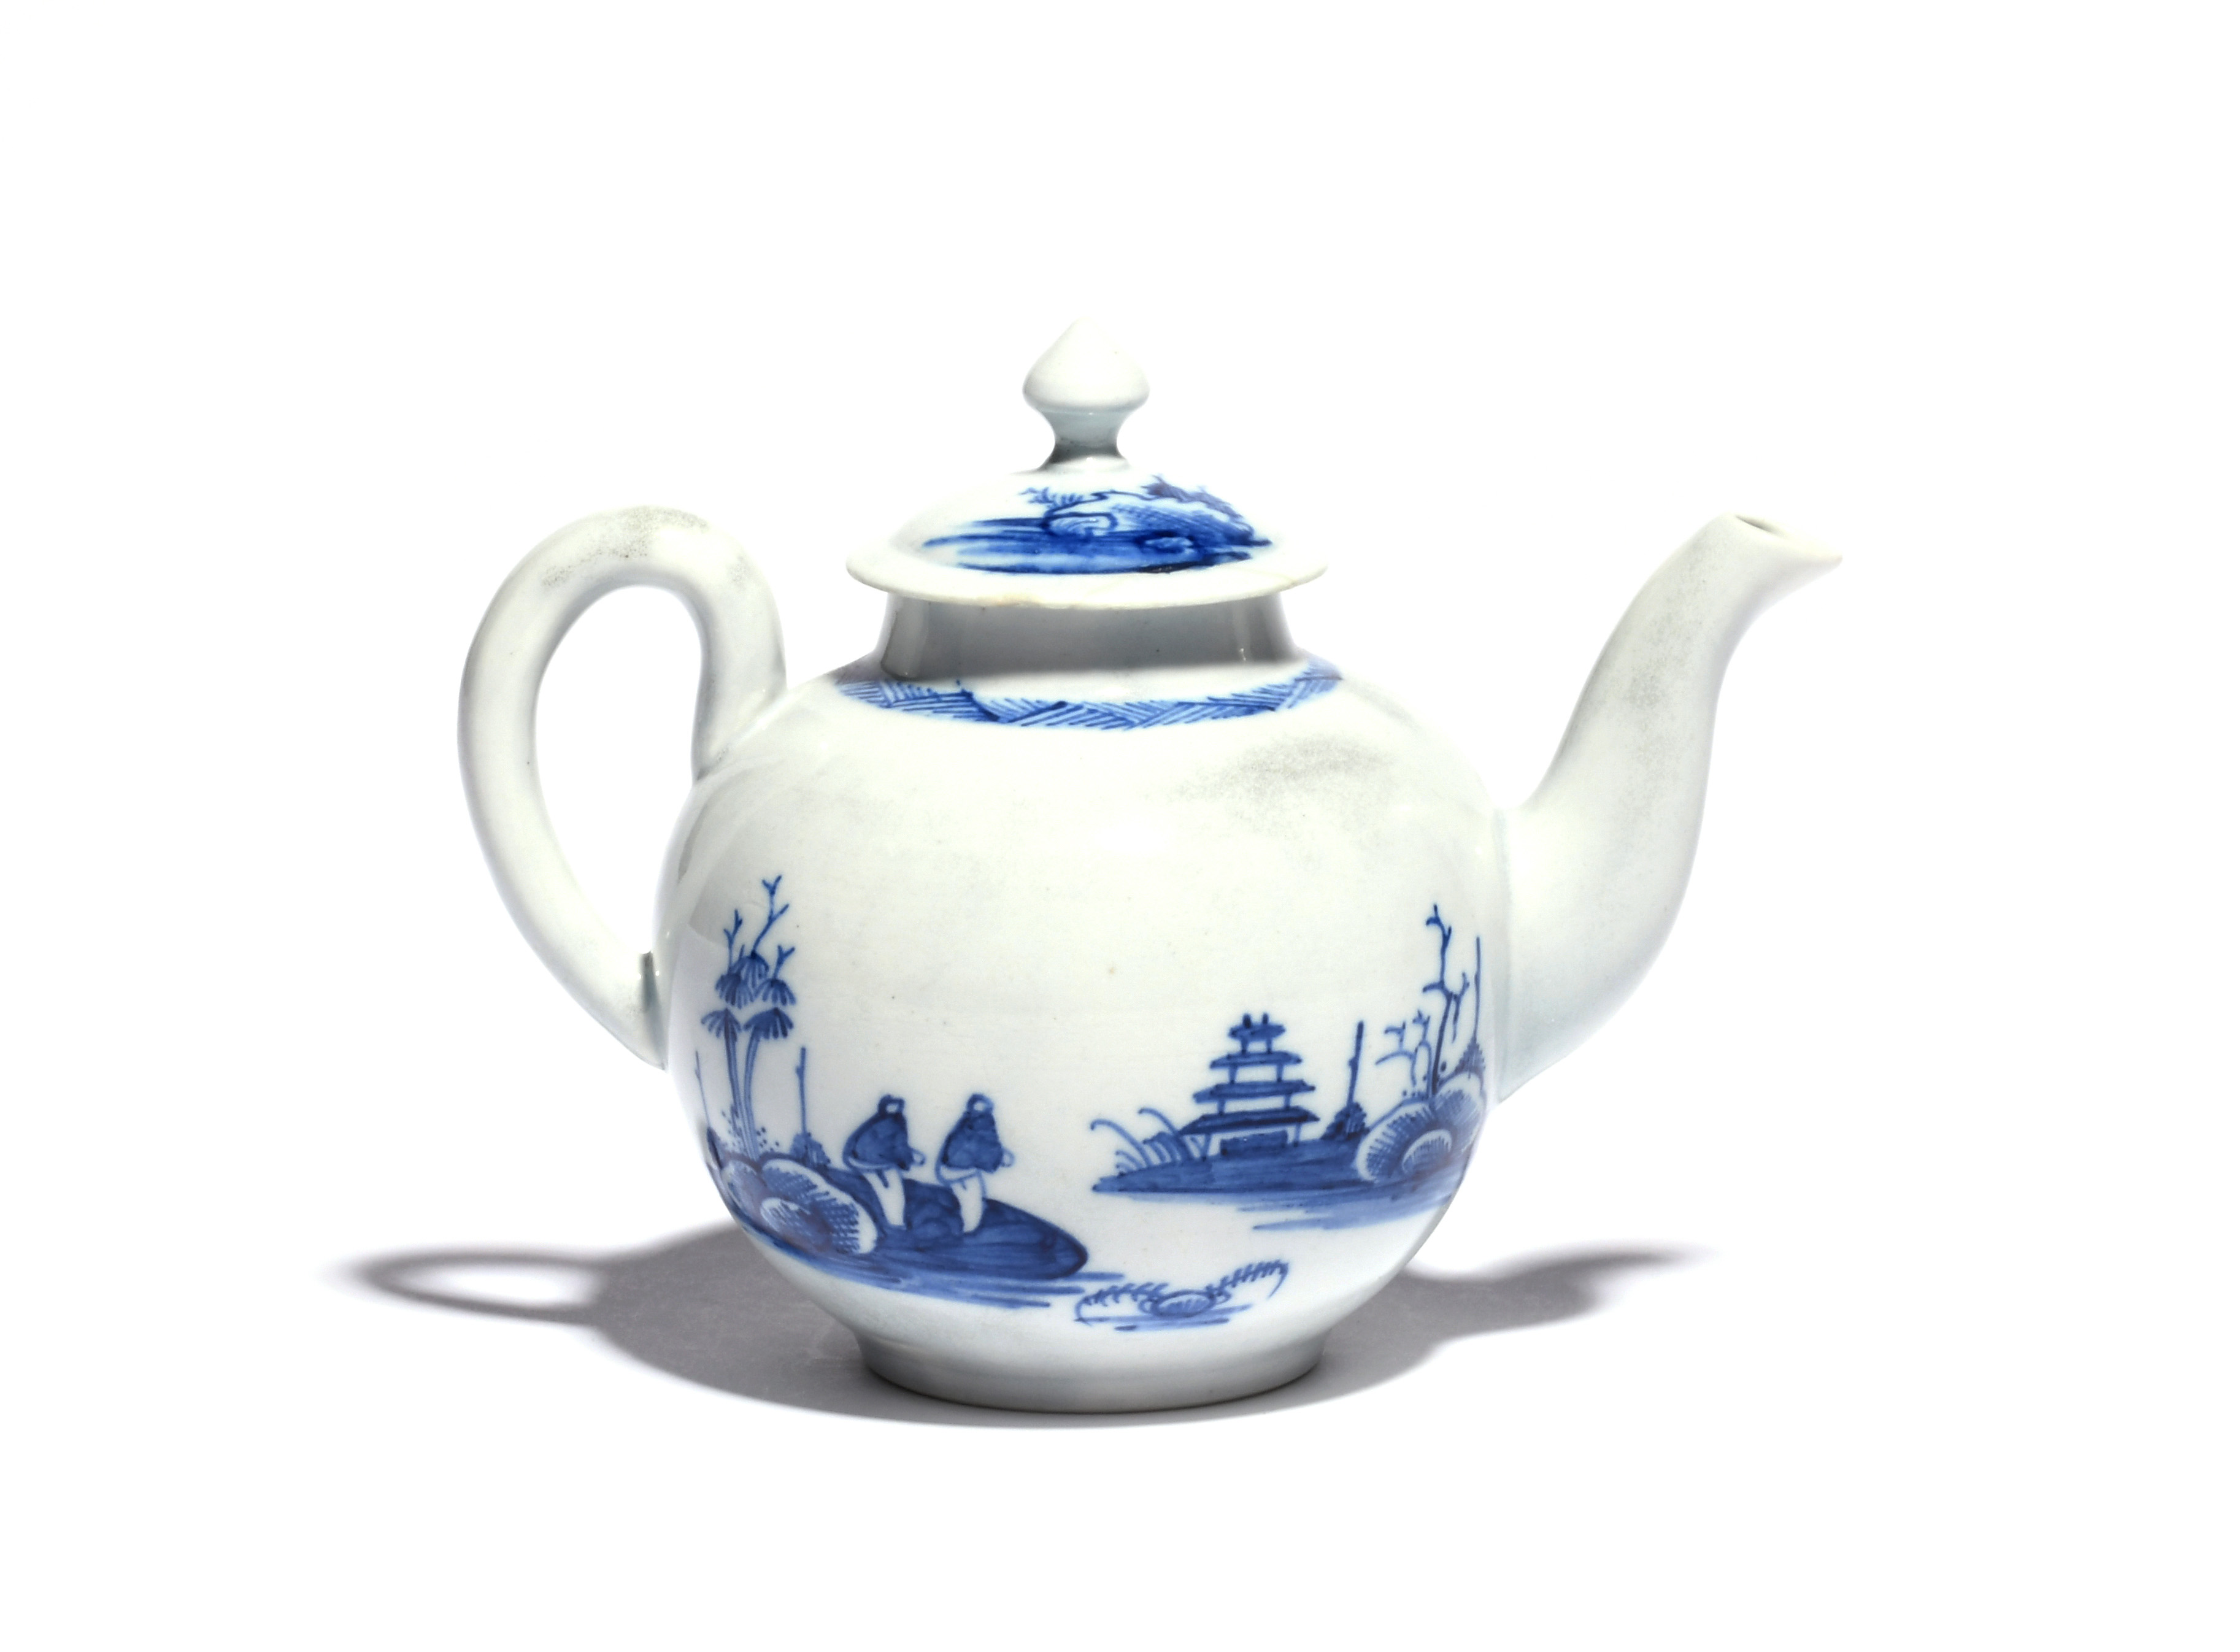 A Richard Chaffers (Liverpool) blue and white teapot and cover c.1758-60, the small globular form